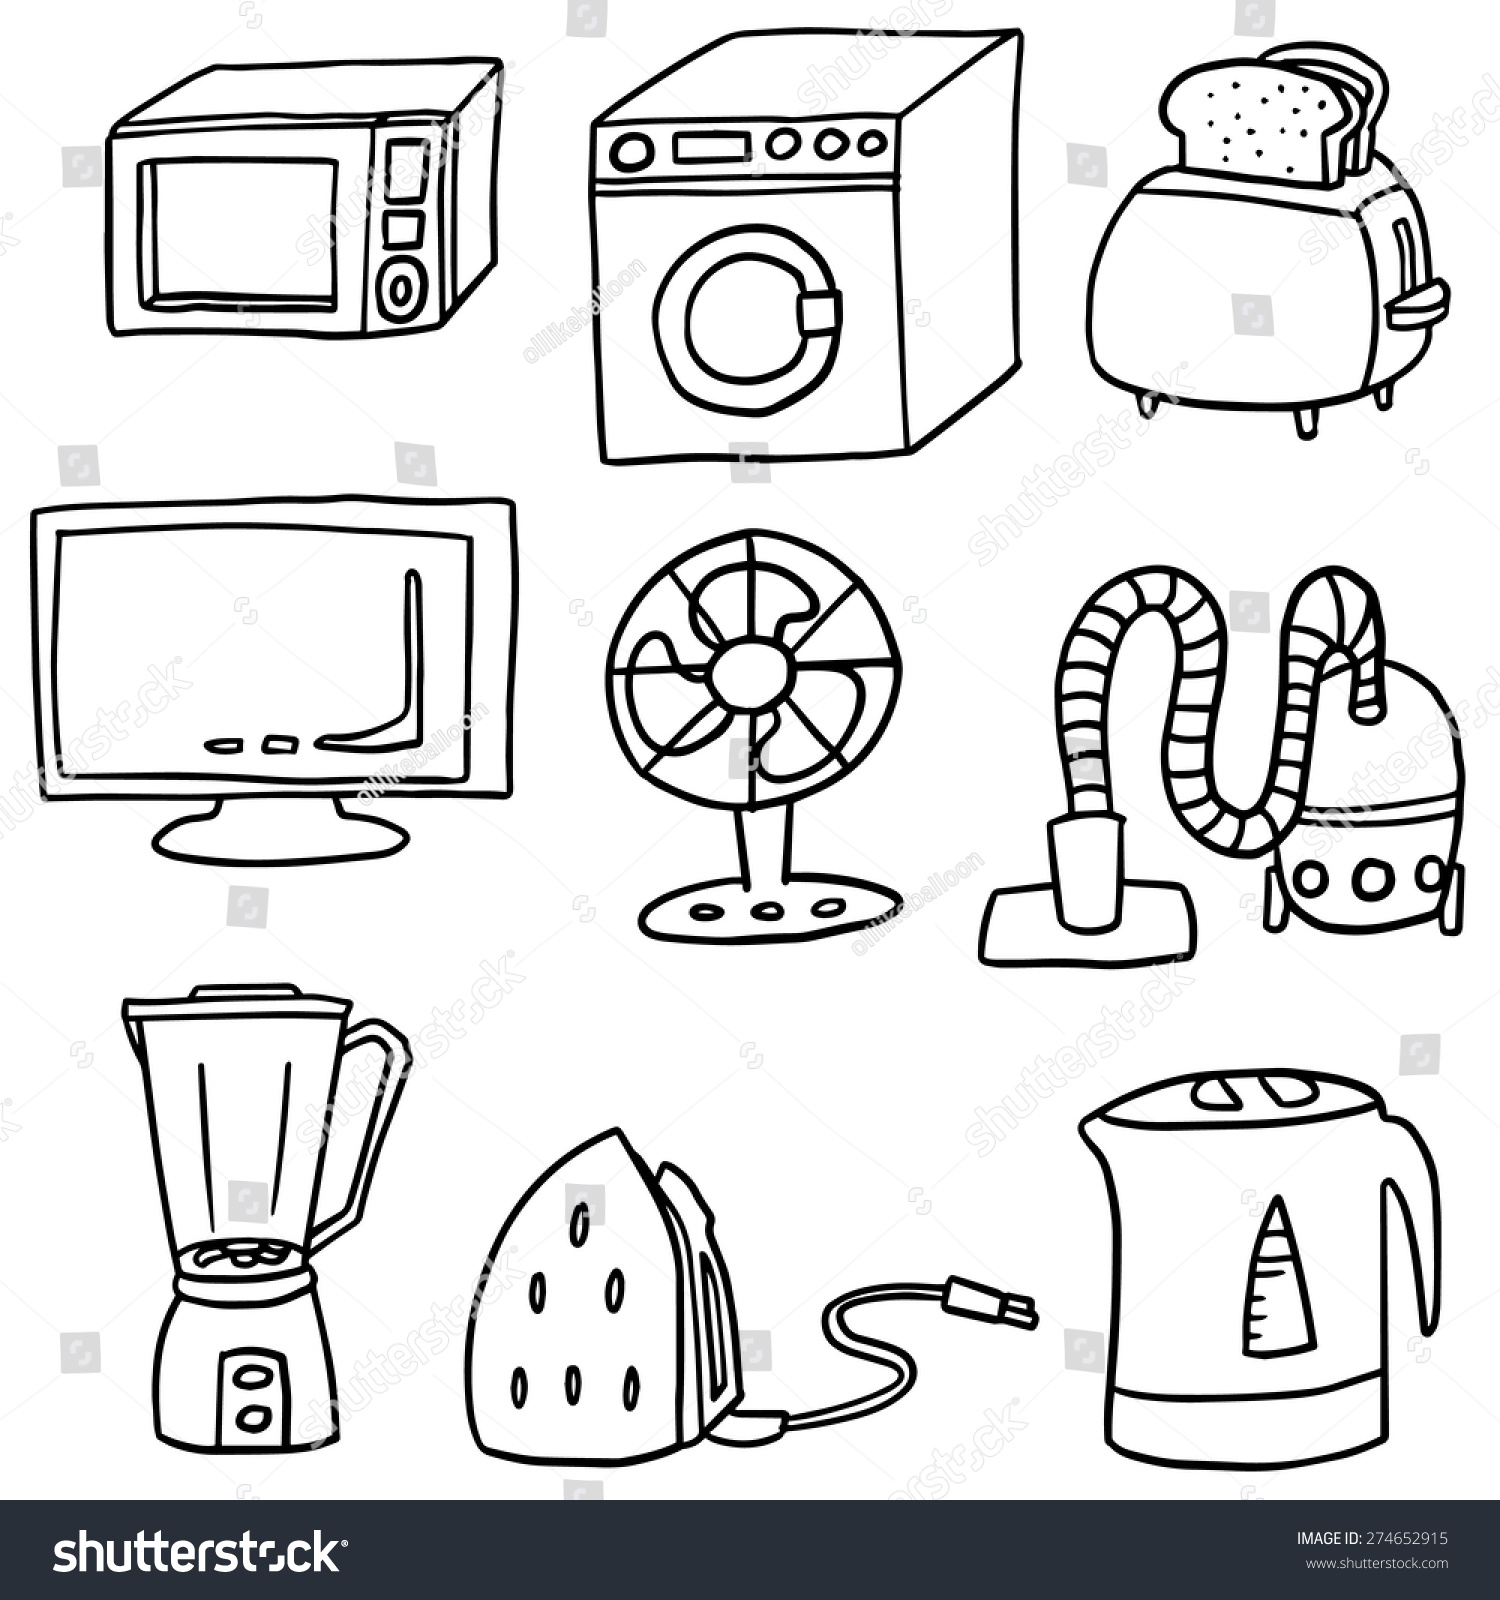 Coloring Page With The Electrician: Vector Set Electrical Appliance Stock Vector 274652915